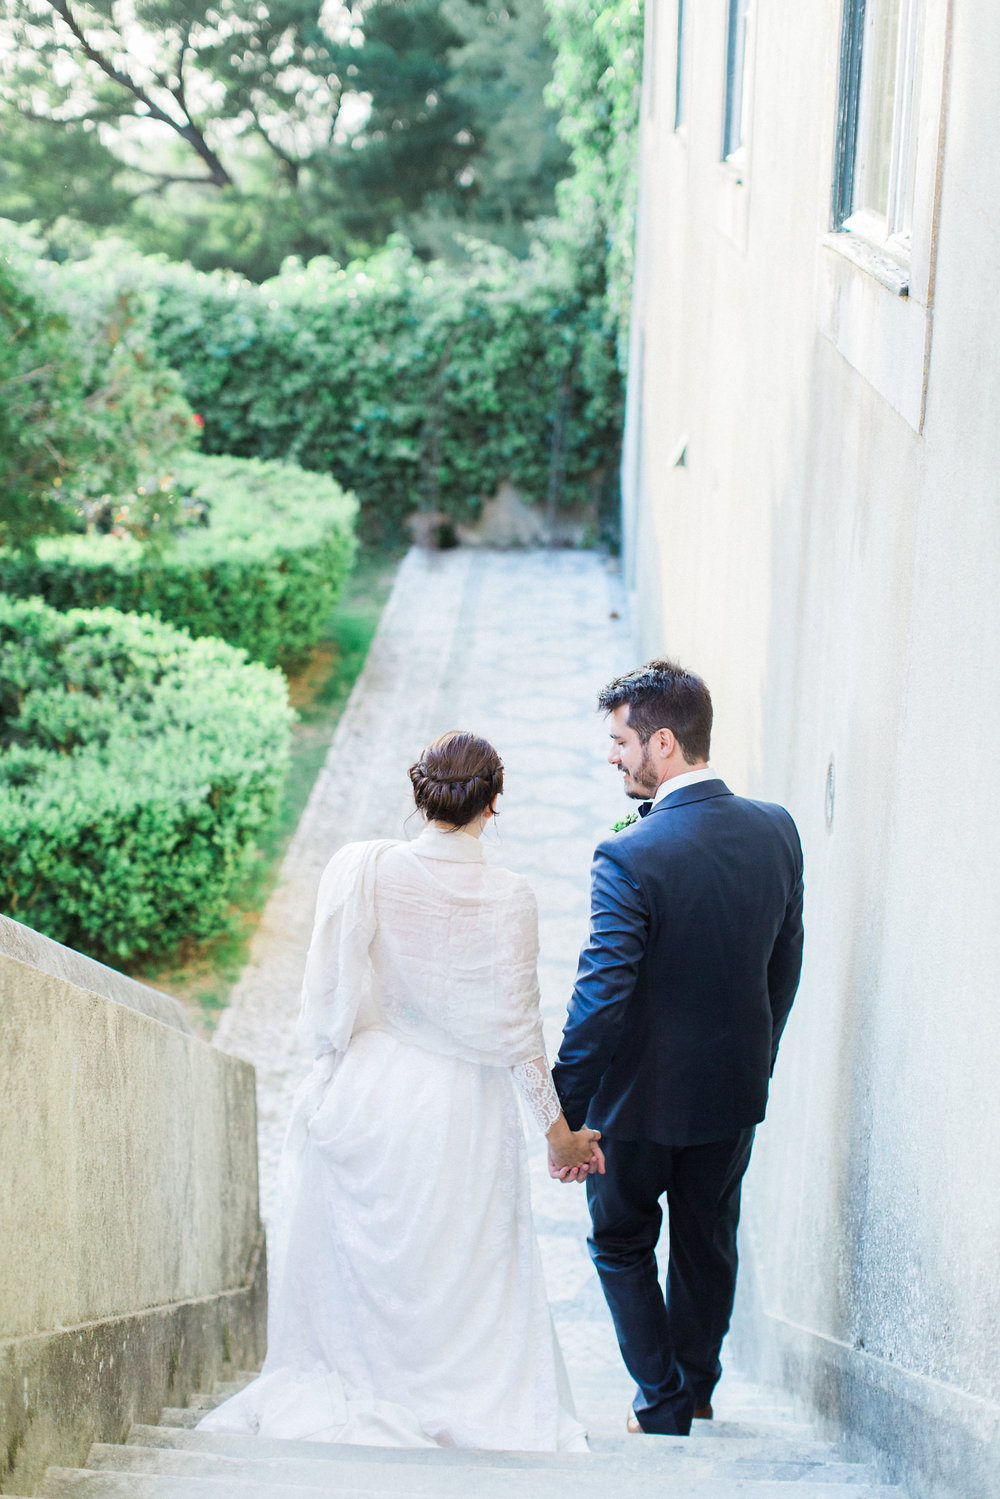 mariaraophotography_weddingsintra-725web.jpg